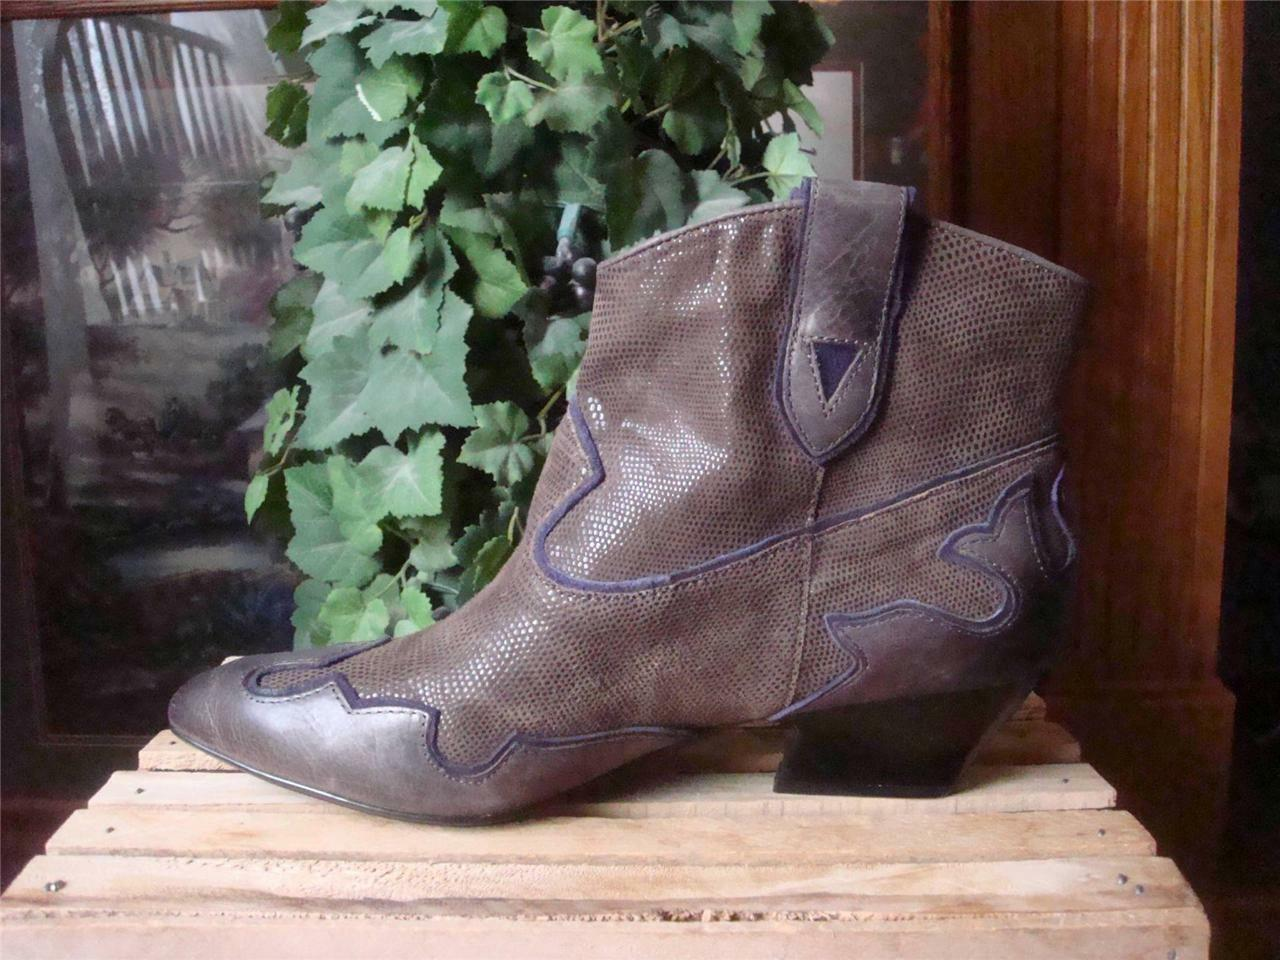 NEW ISOLA ODIN TAUPE BROWN LEATHER & SUEDE 8/7.5 FASHION WESTERN ANKLE StiefelSZ 8/7.5 SUEDE 9679e6